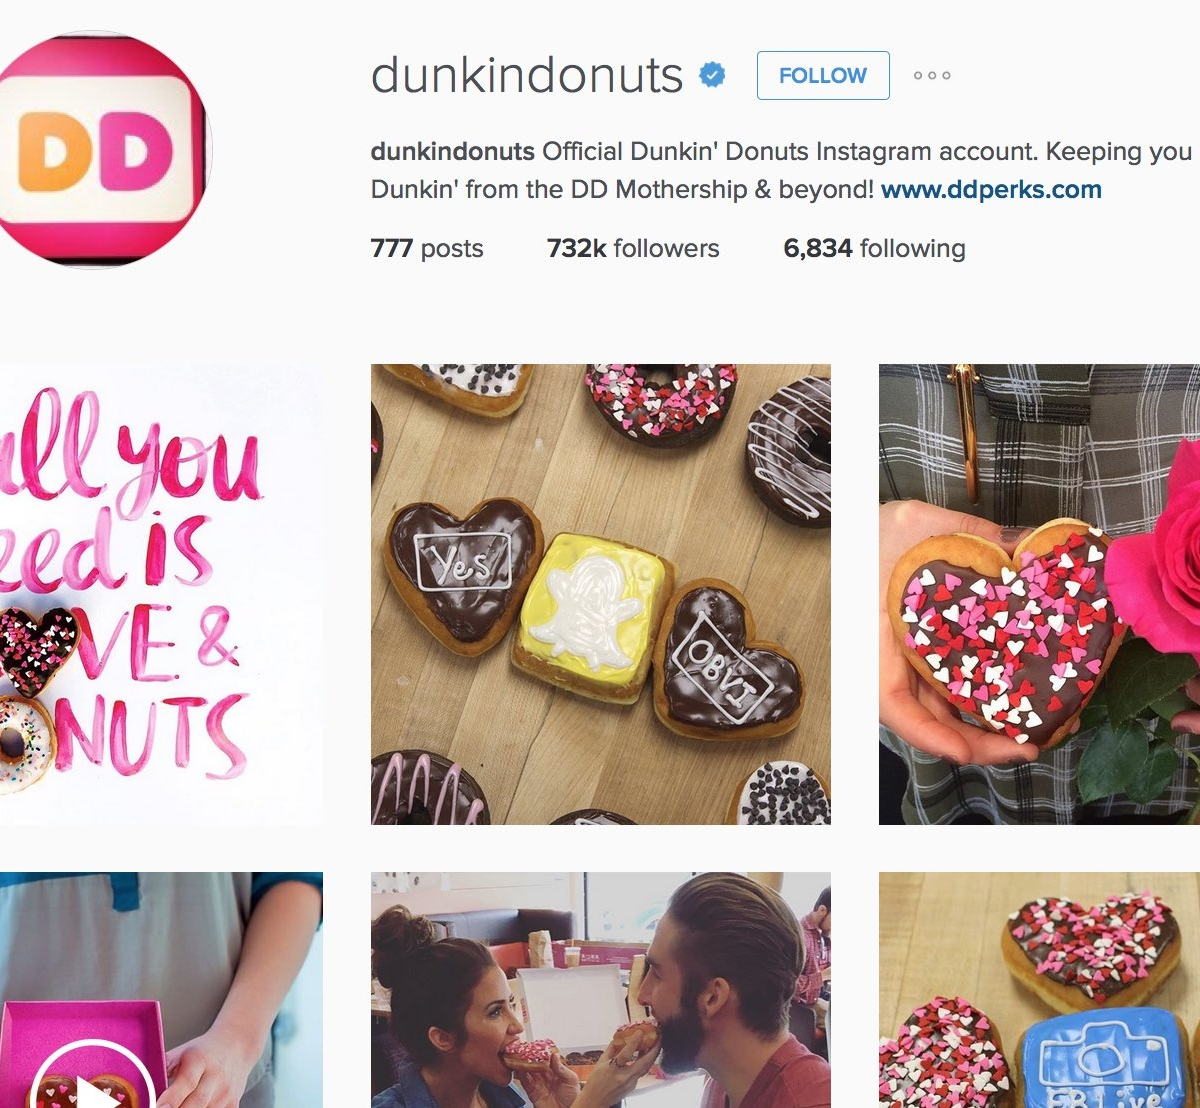 strategic planning case study dunkin donuts Case study: dunkin' donuts re-positioning with new product categories market expansion strategy expands market and fills manufacturing capacity.